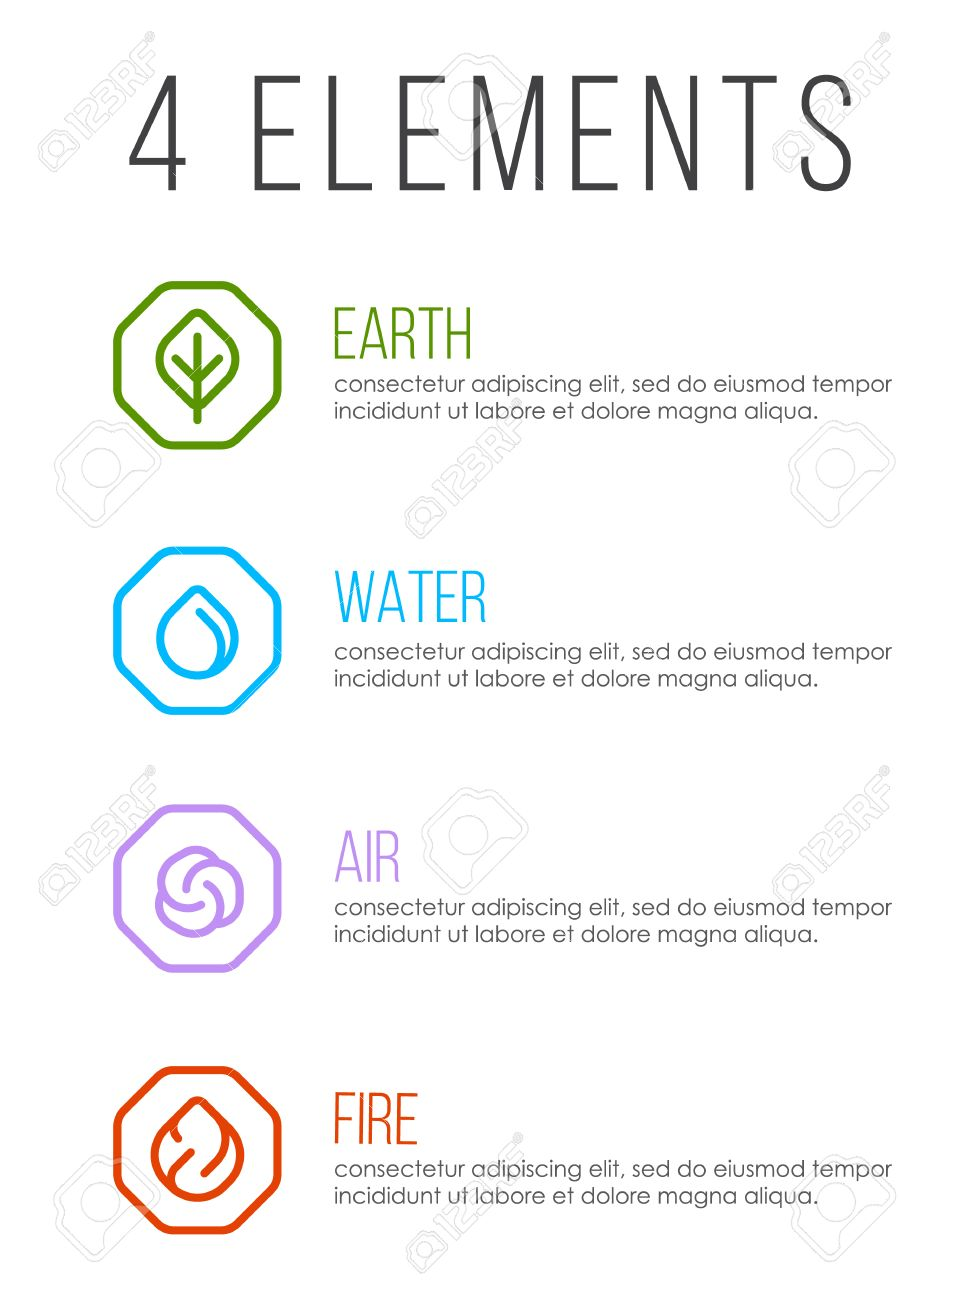 Nature 4 elements in line border abstract icon sign. Water, Fire, Earth, Air. vector design - 74235290